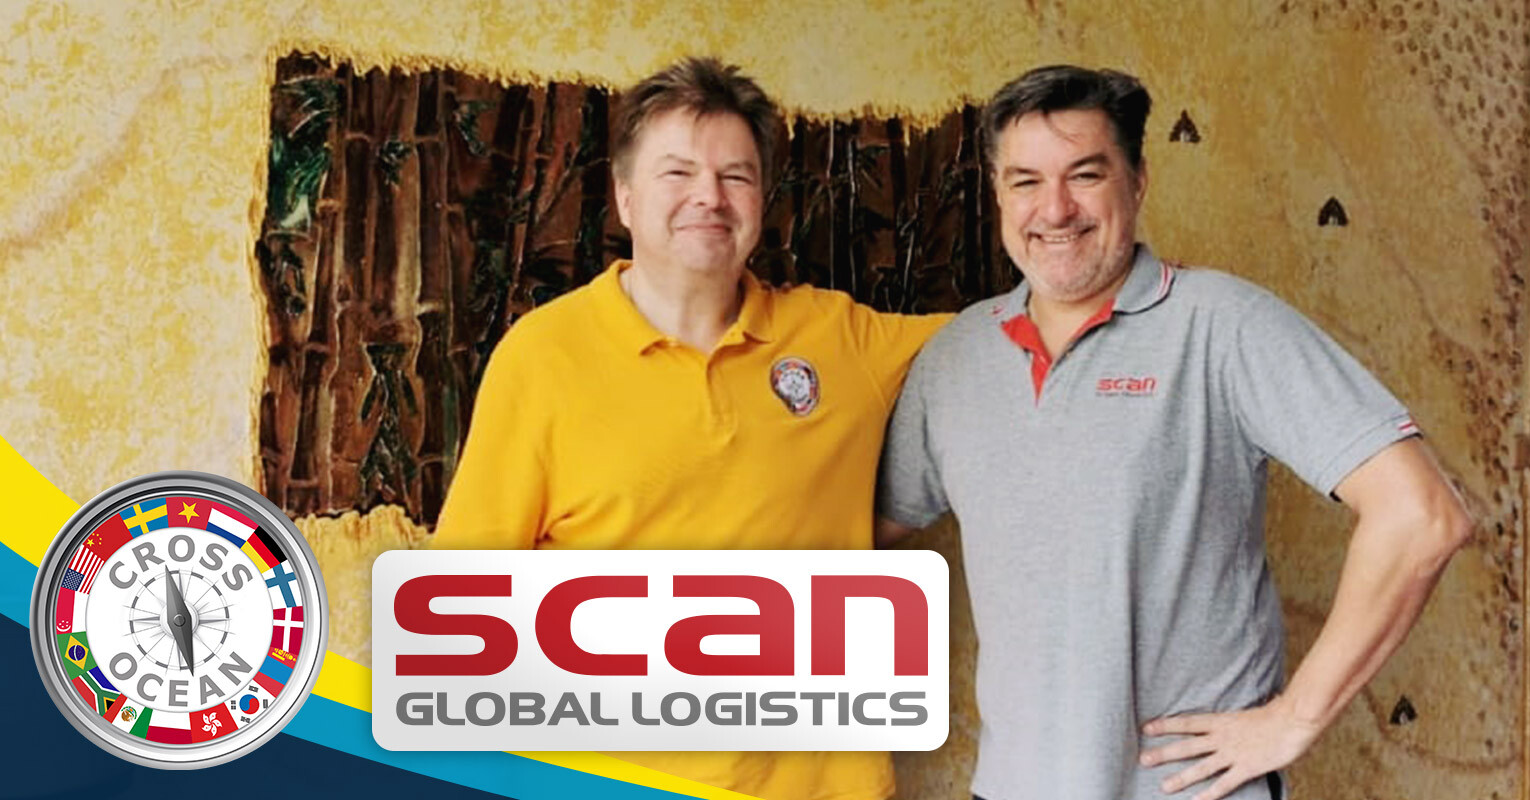 Scan Global Logistics Thailand and Cross Ocean met in Bangkok